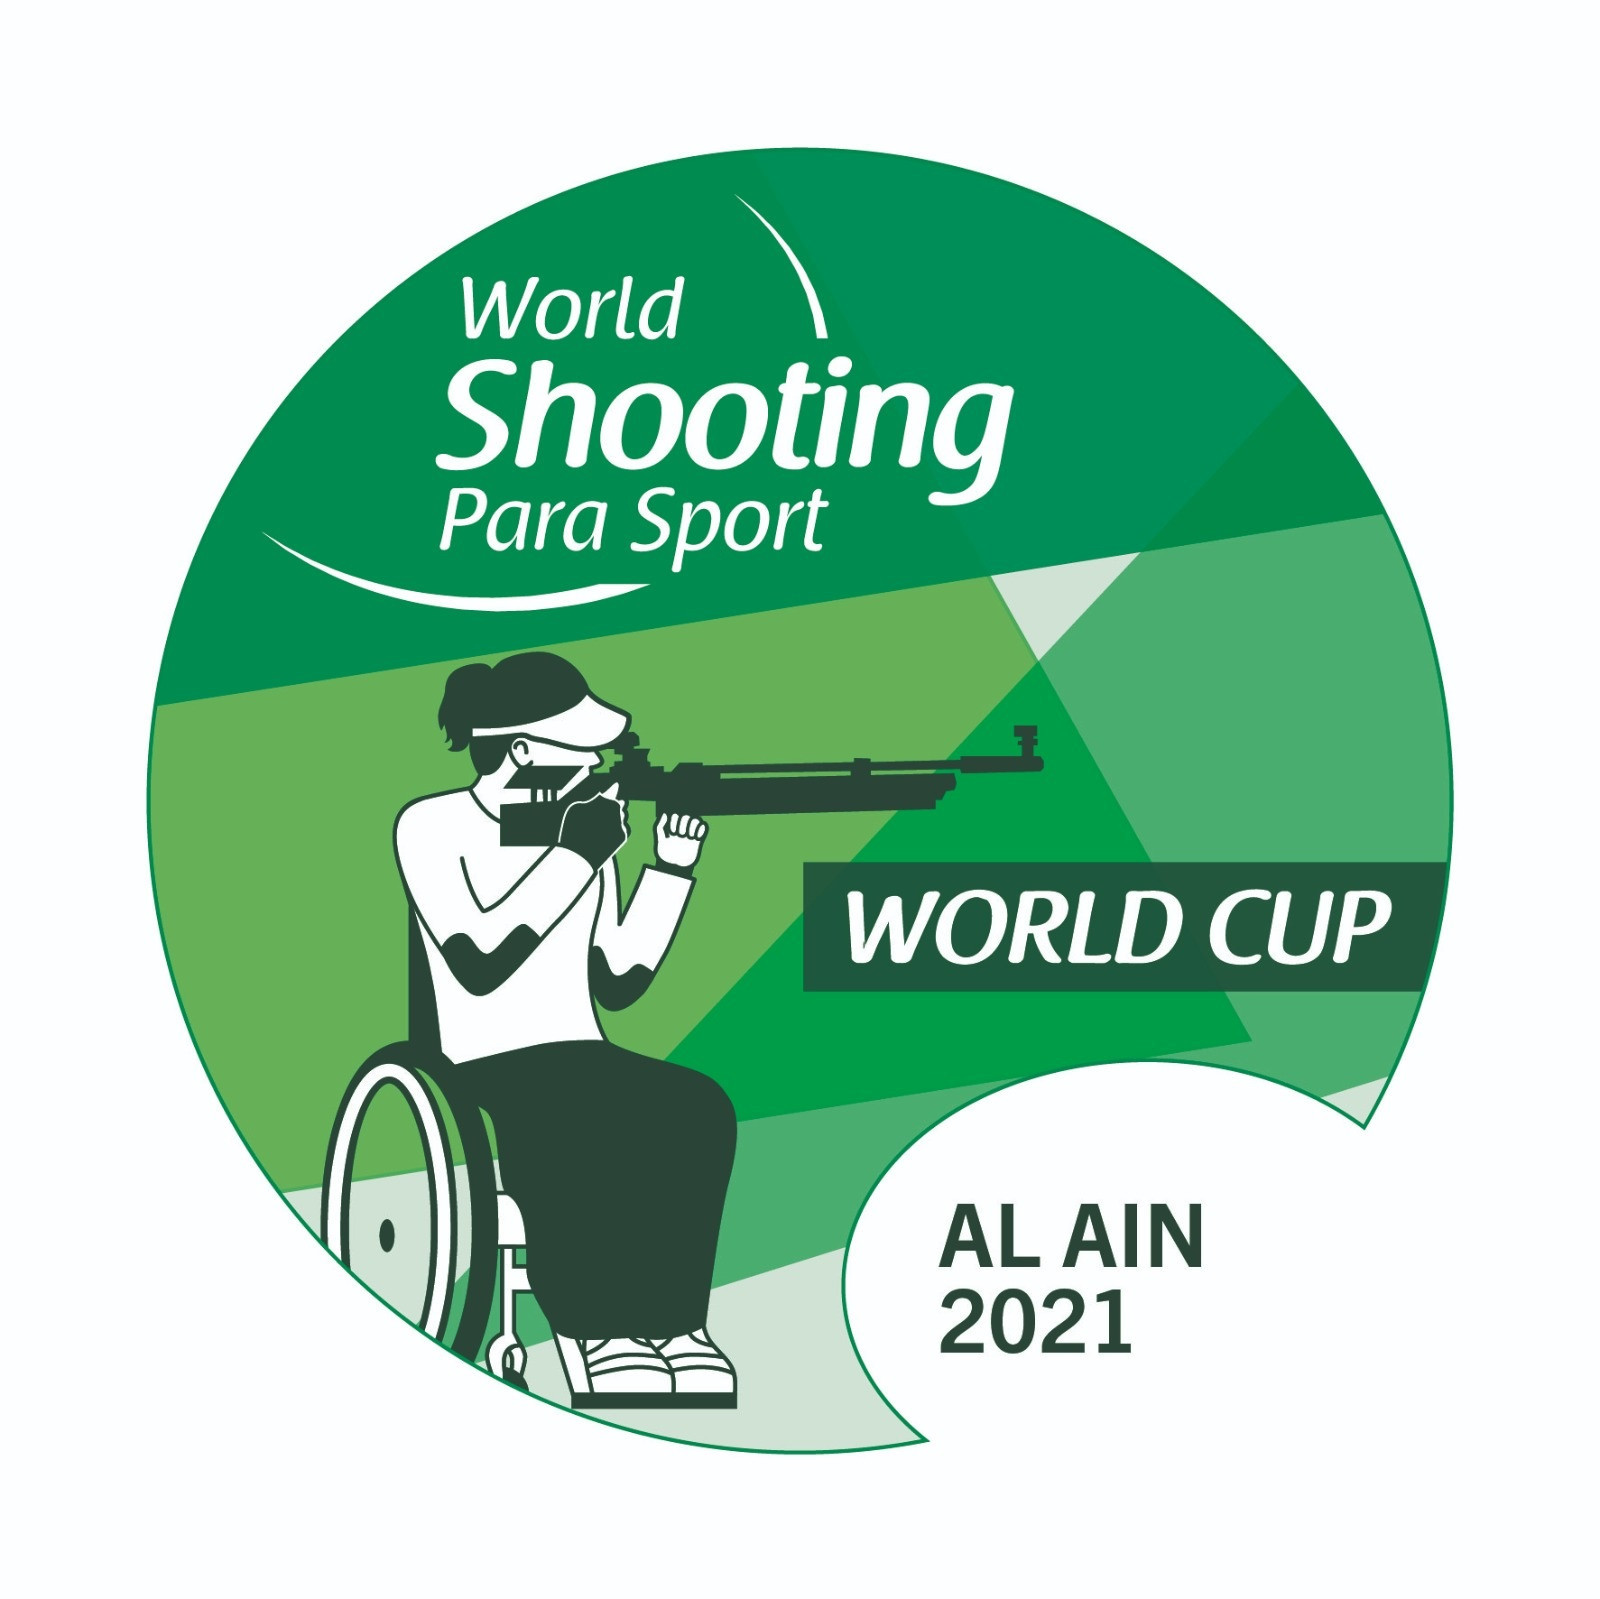 Double delight for Ukraine on day one of World Shooting Para Sport World Cup in Al Ain